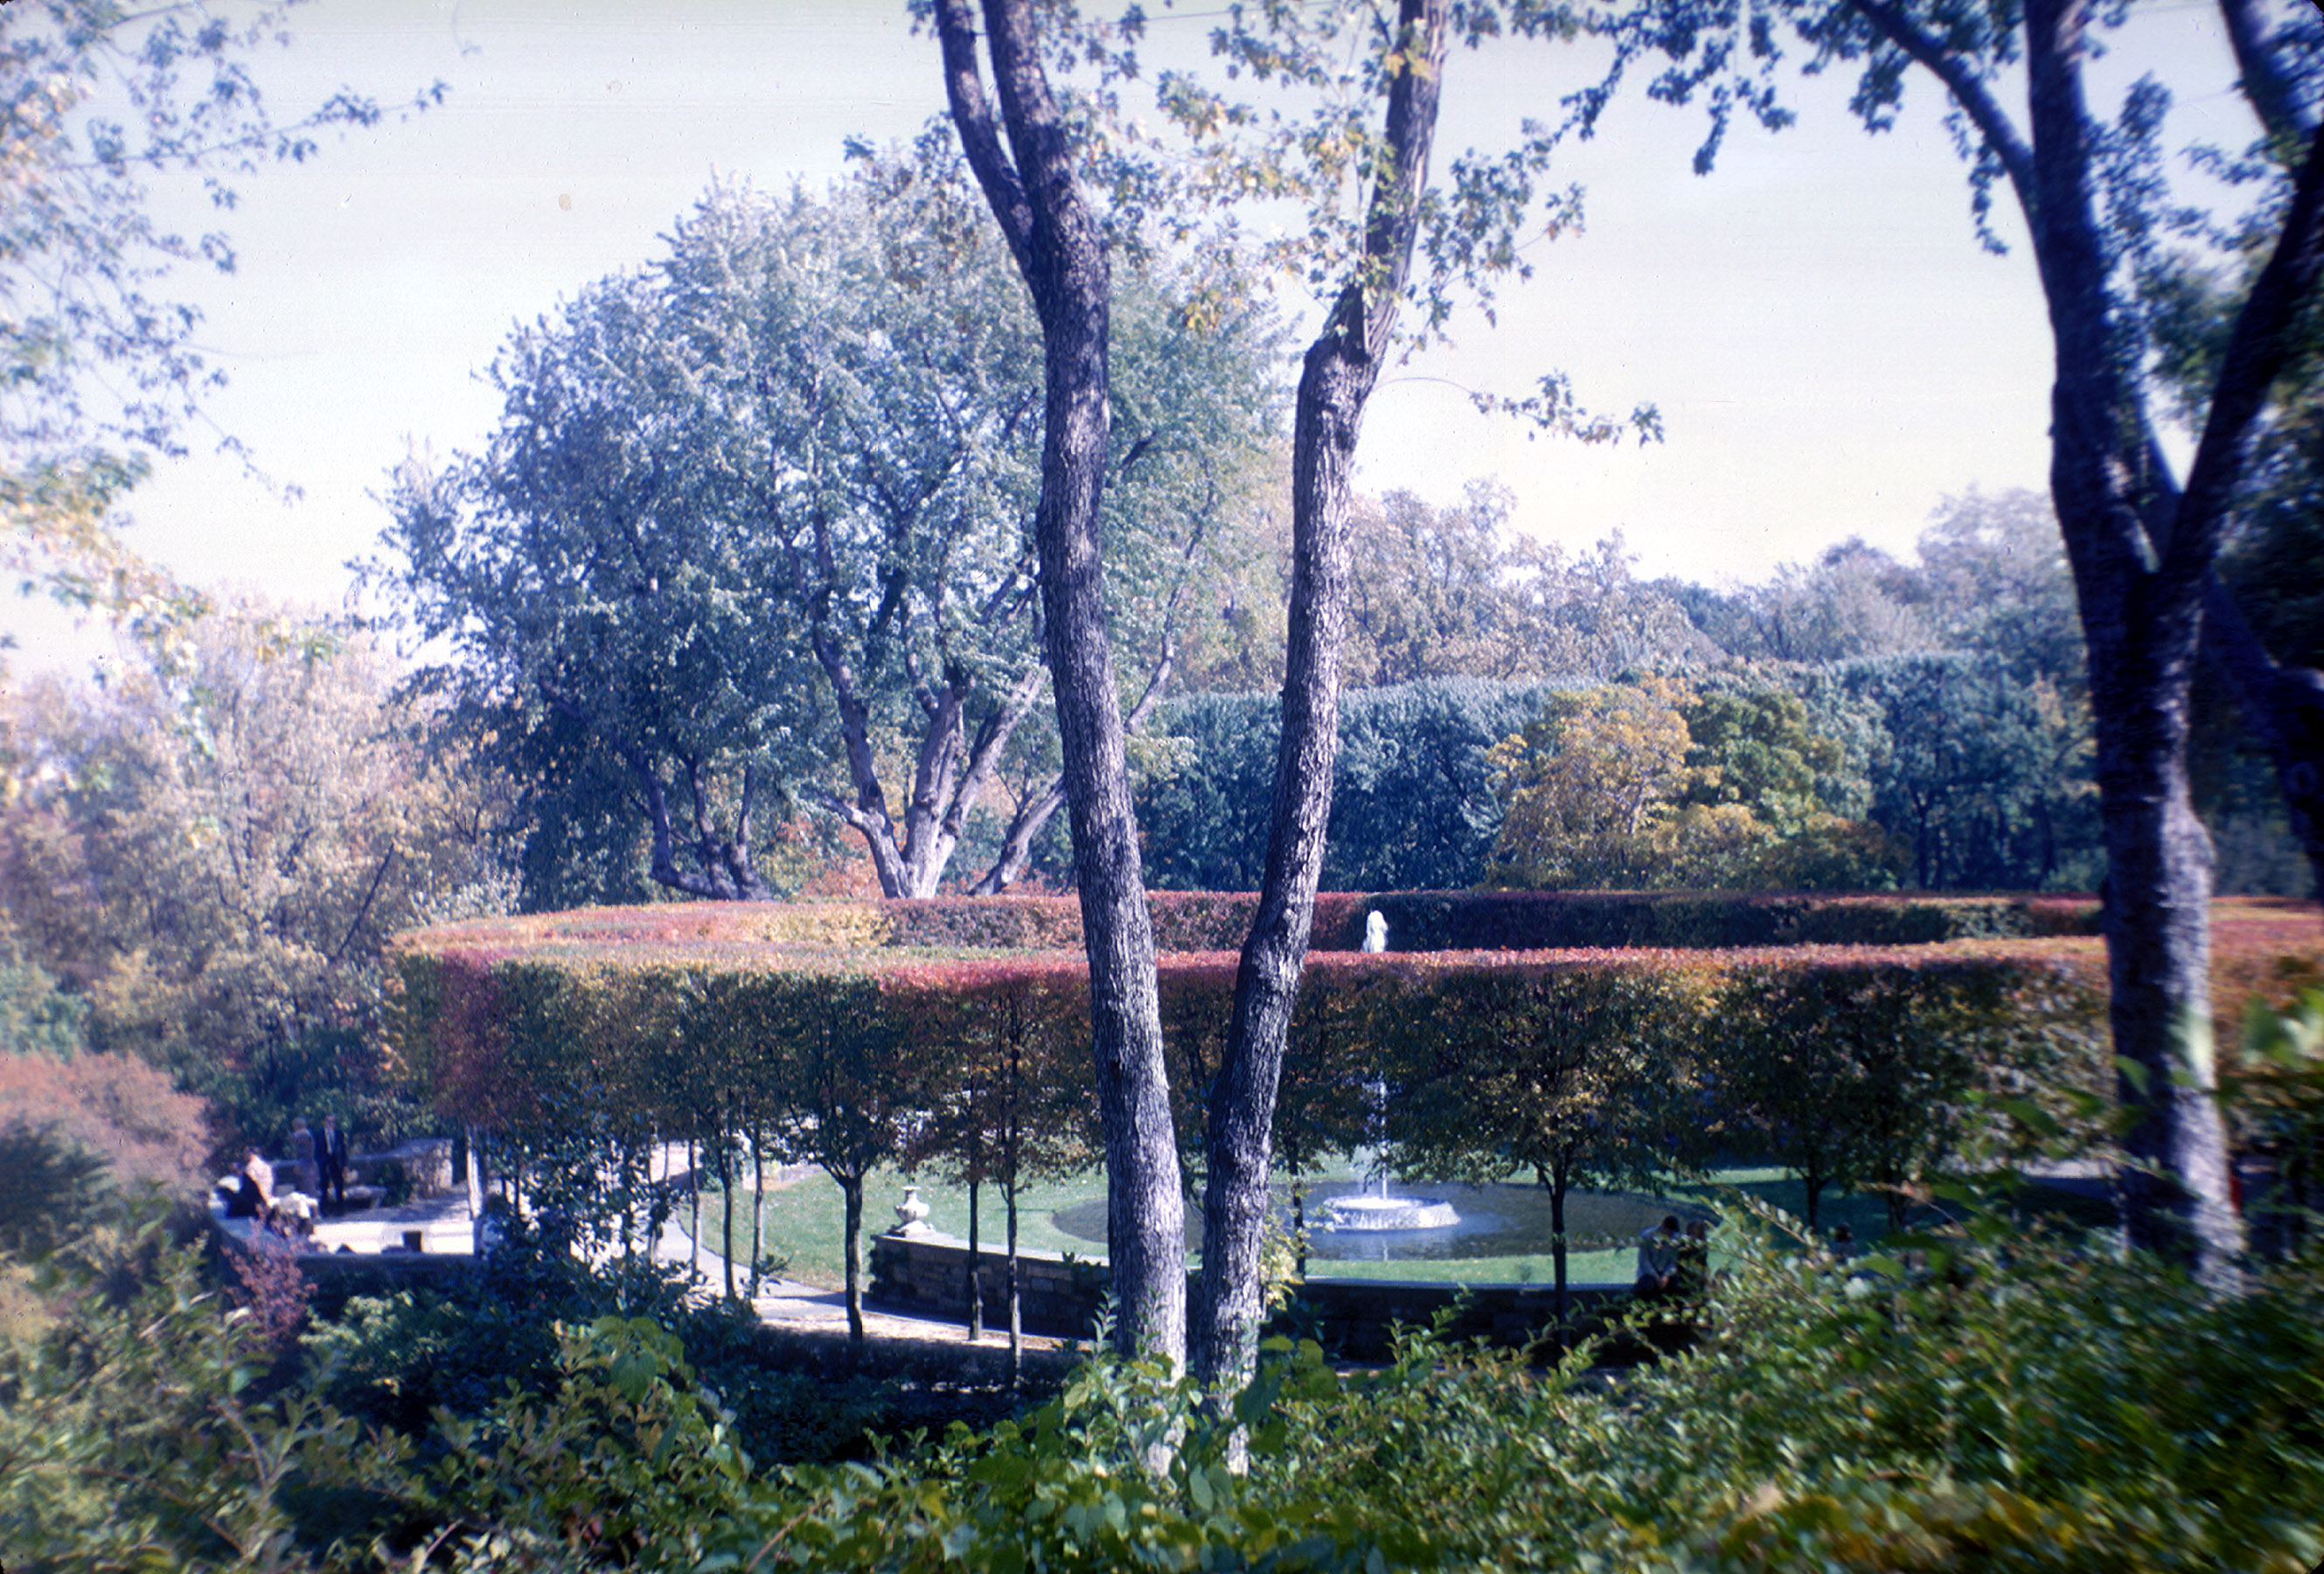 Image of the Griswold-designed moats and water feature in the Ellipse, ca. 1960-1967